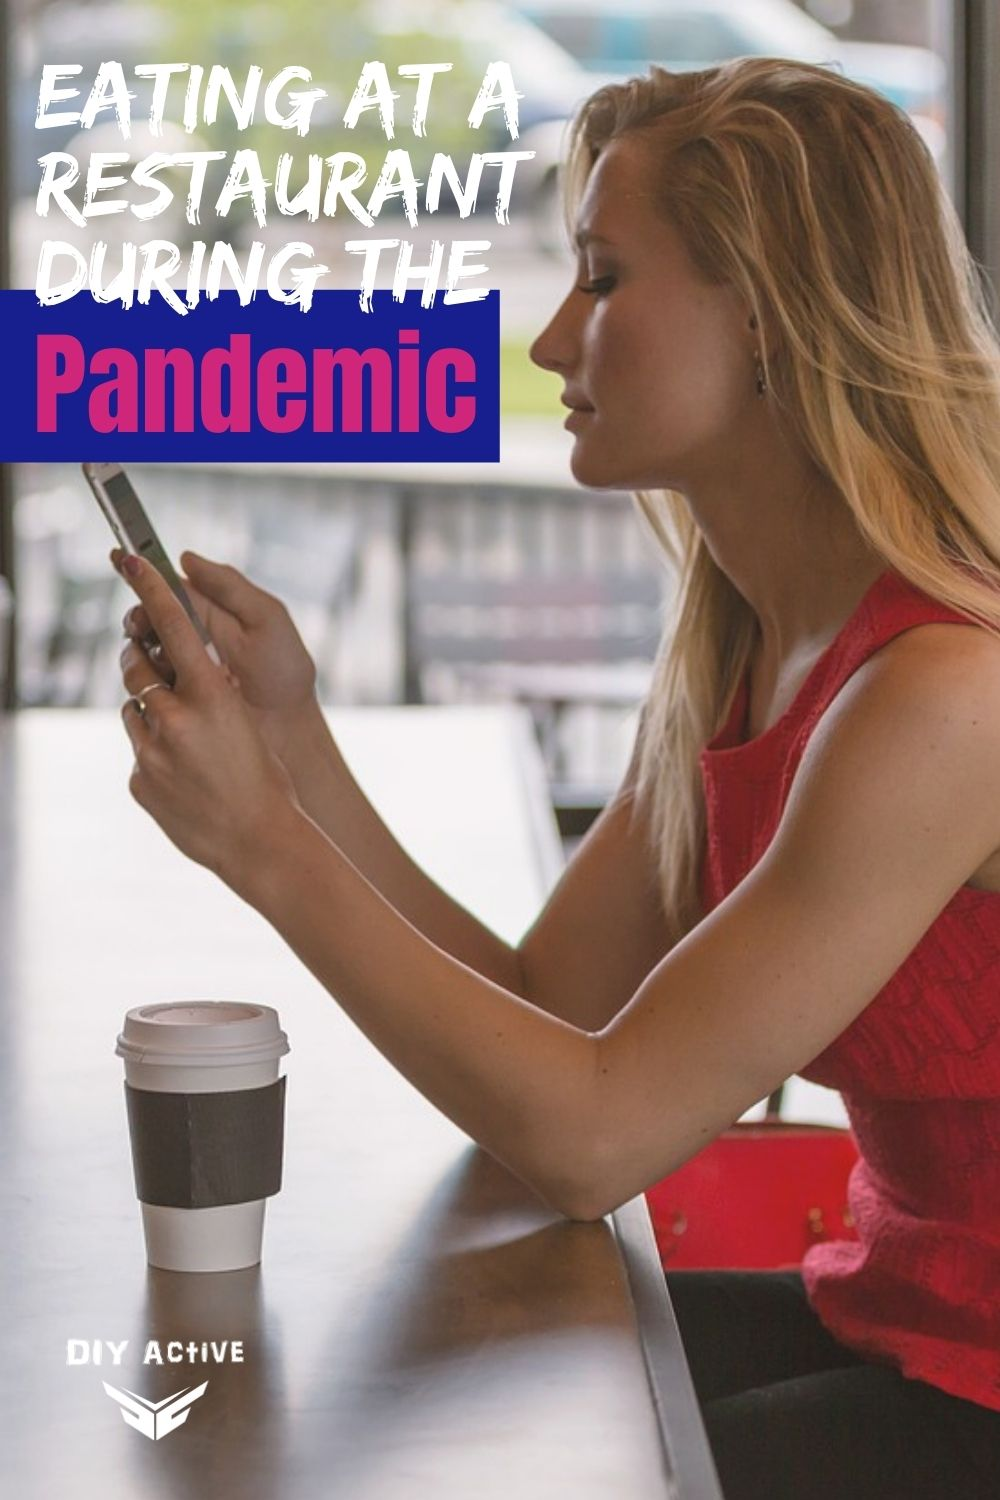 Tips for Eating at a Restaurant During the Pandemic